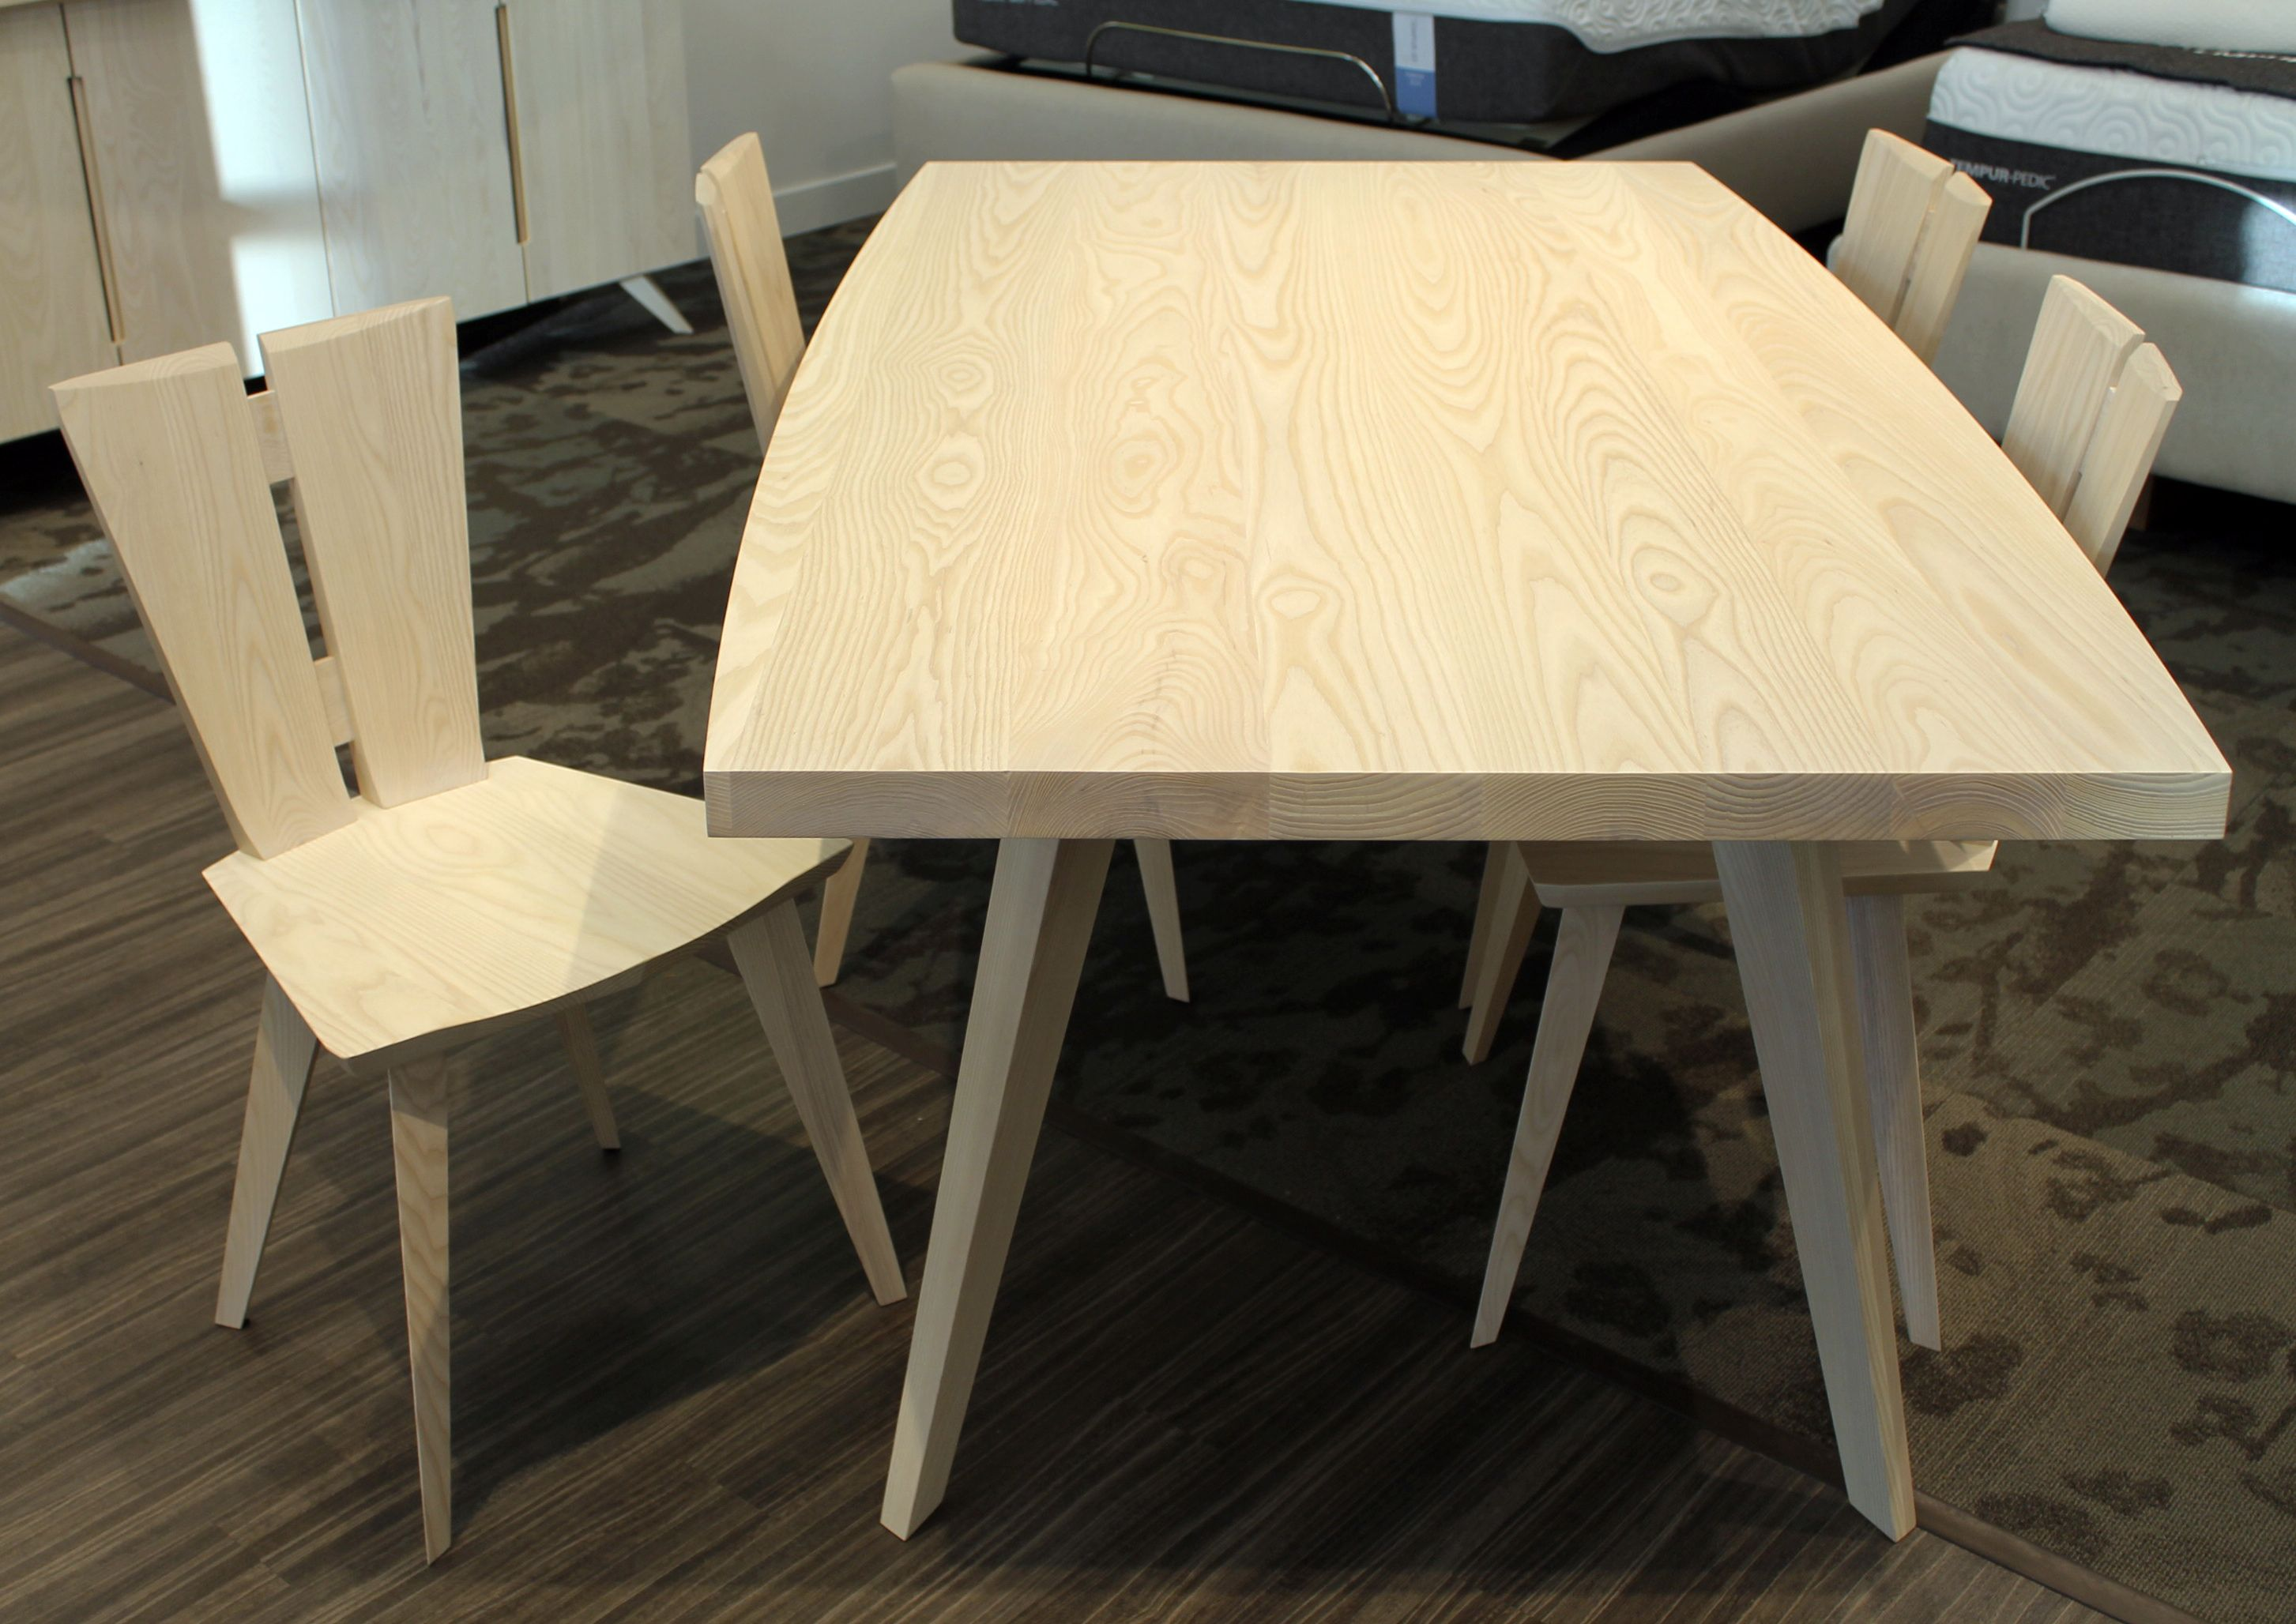 the axis dining table and chairs by copeland furniture in vermont sustainable solid